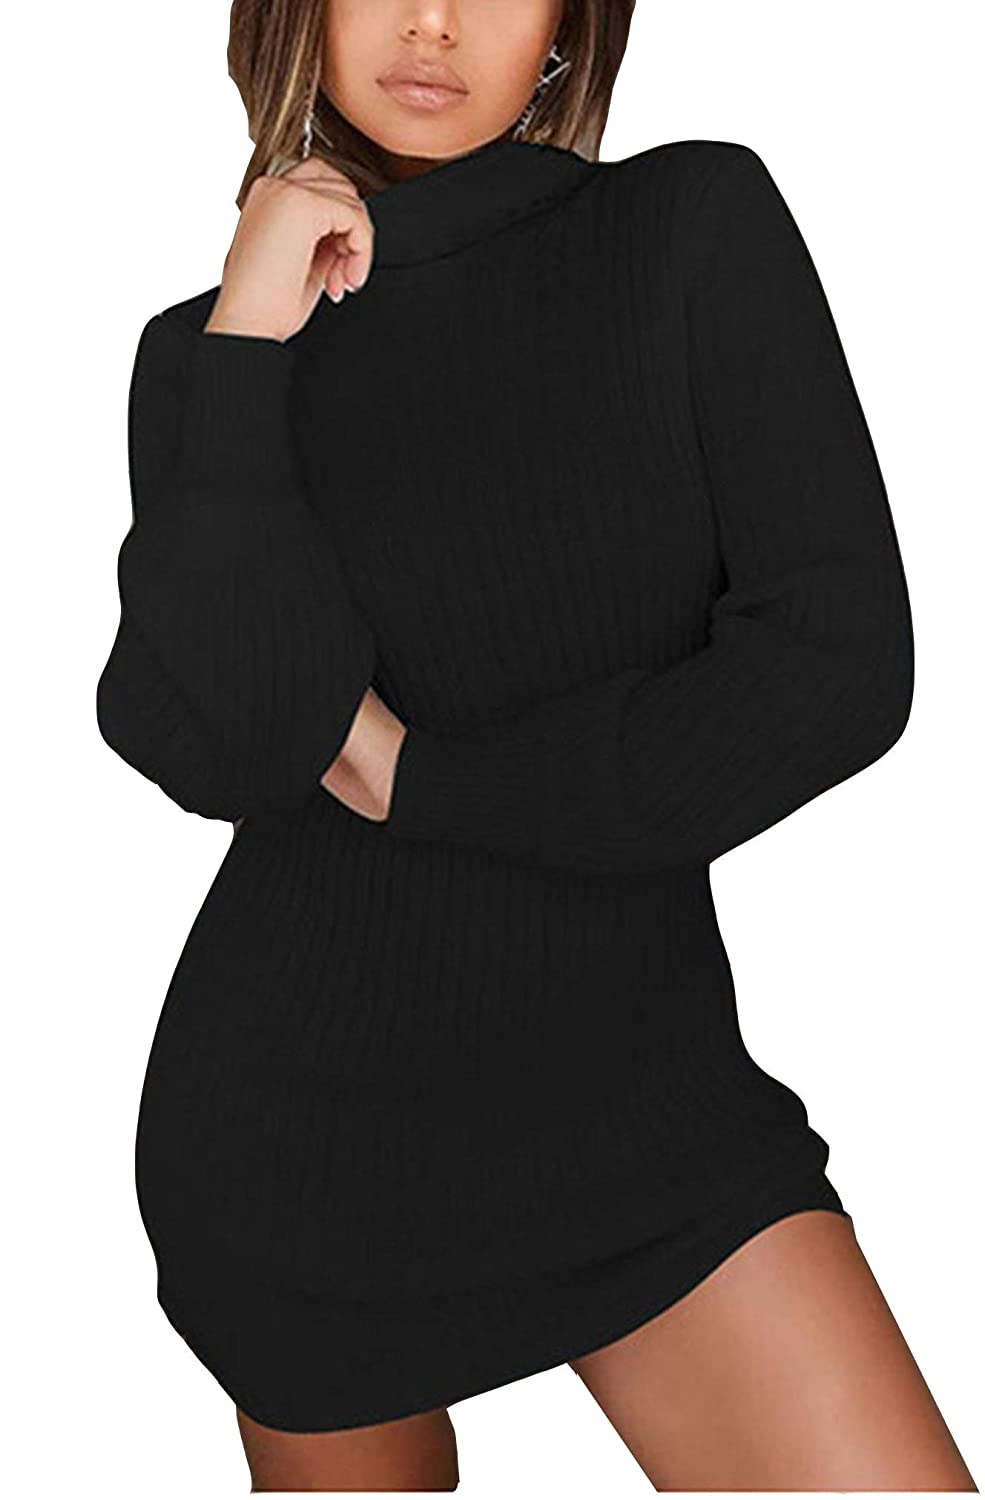 WentShopping Women Long Sleeve Cowl Neck Trim Knitted Bodycon Dresses  Knitwear at Amazon Women s Clothing store  61b5a0761